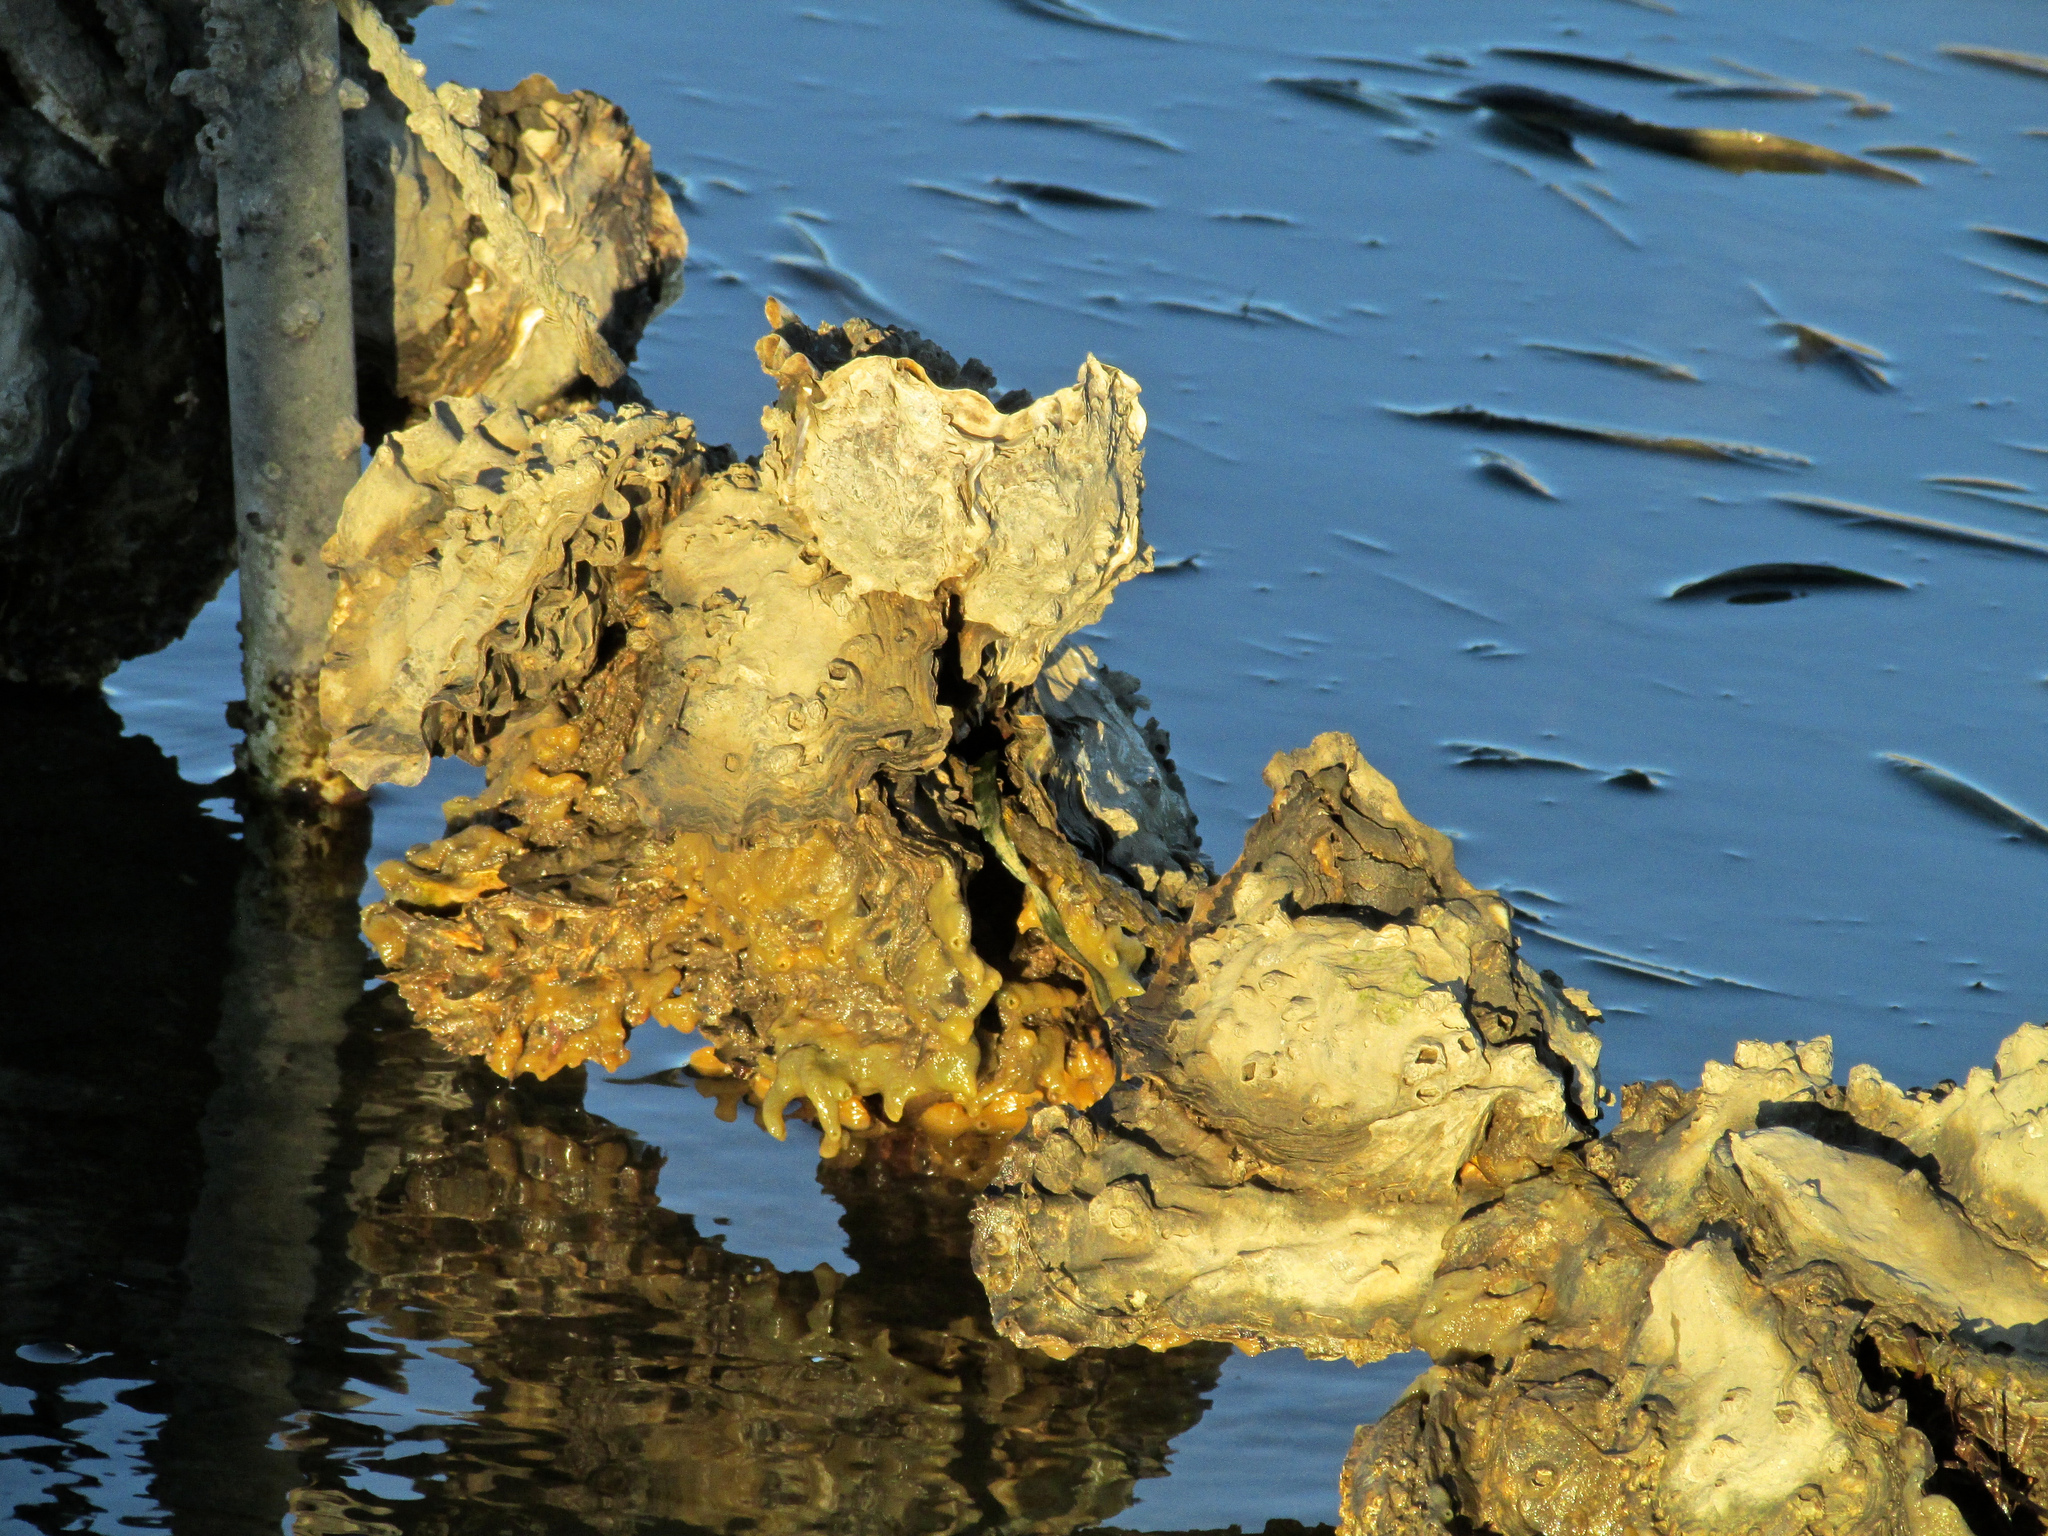 Willapa Bay Oysters detail